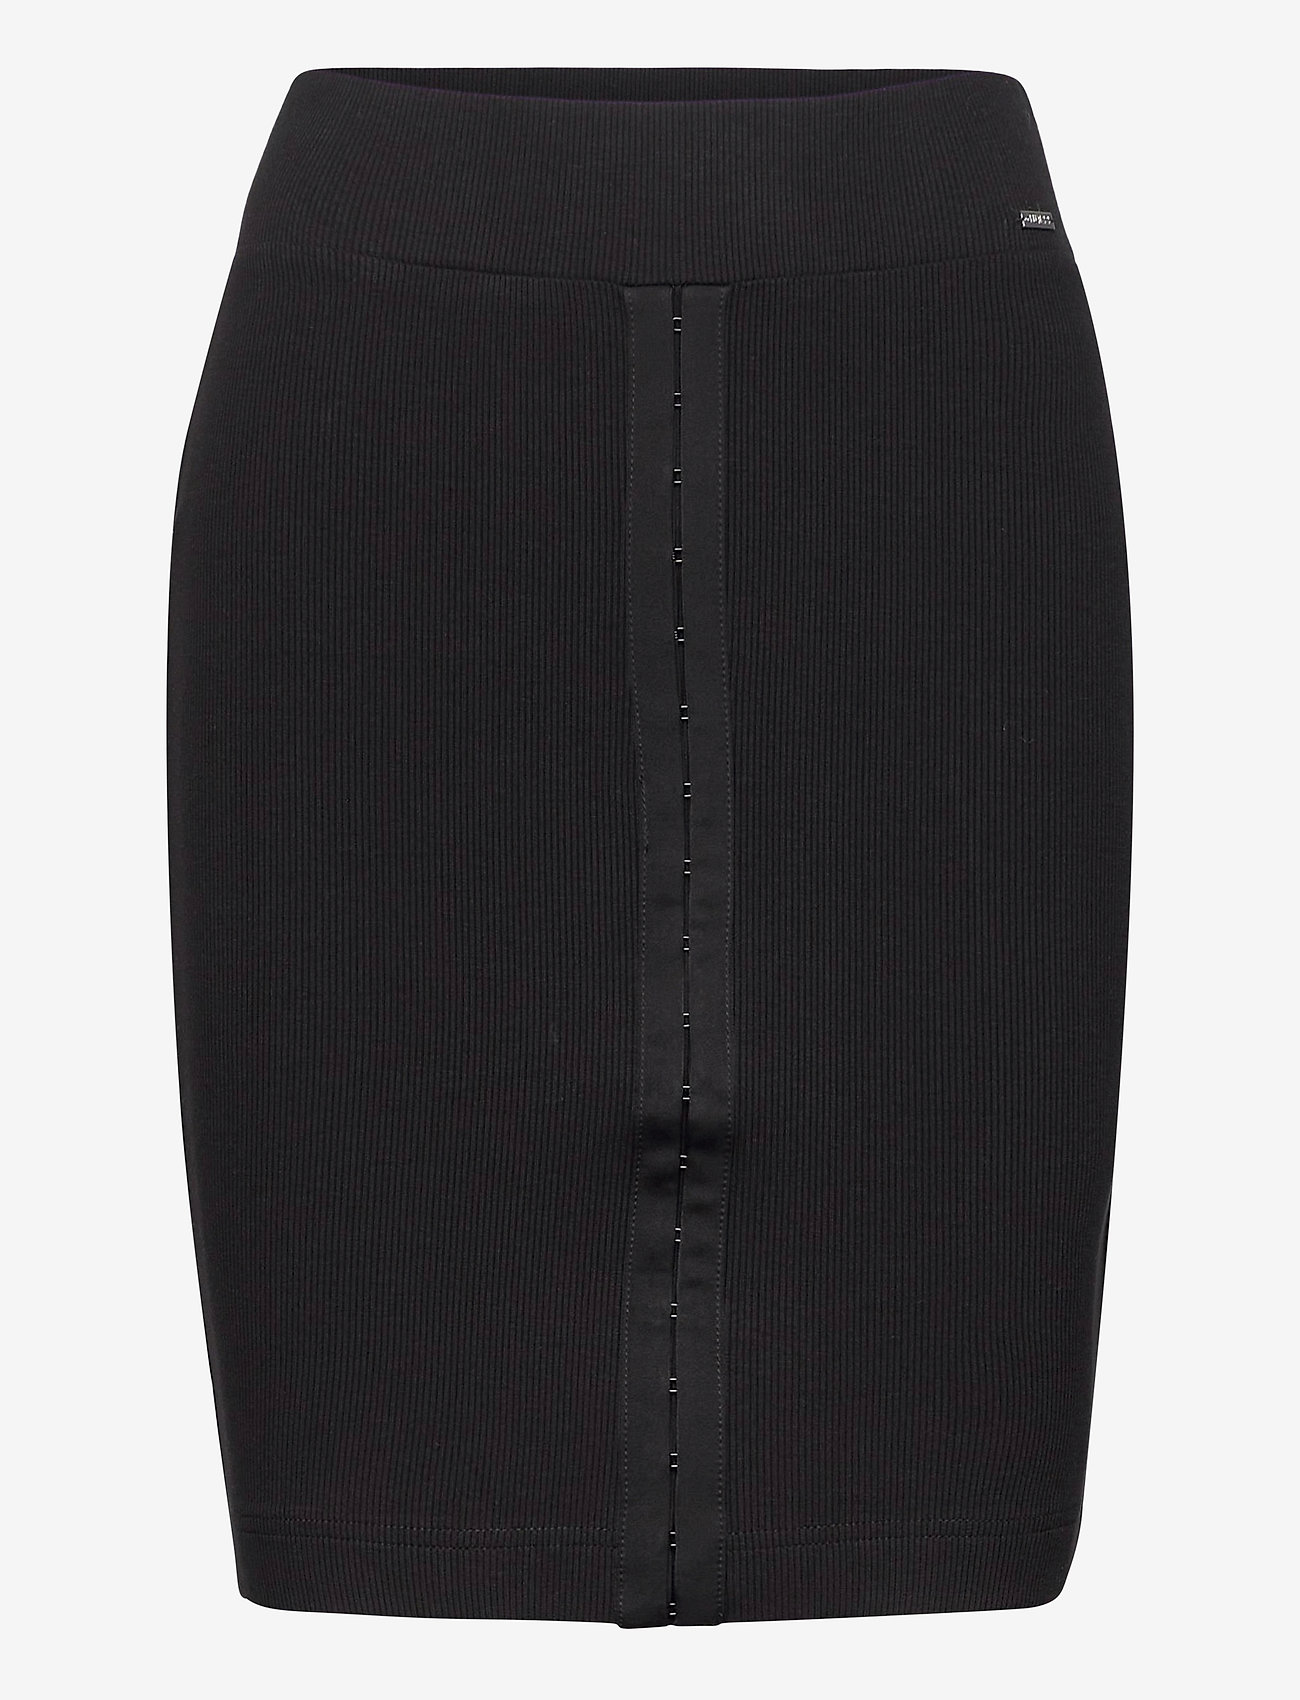 GUESS Jeans - TULAY SKIRT - jet black a996 - 0